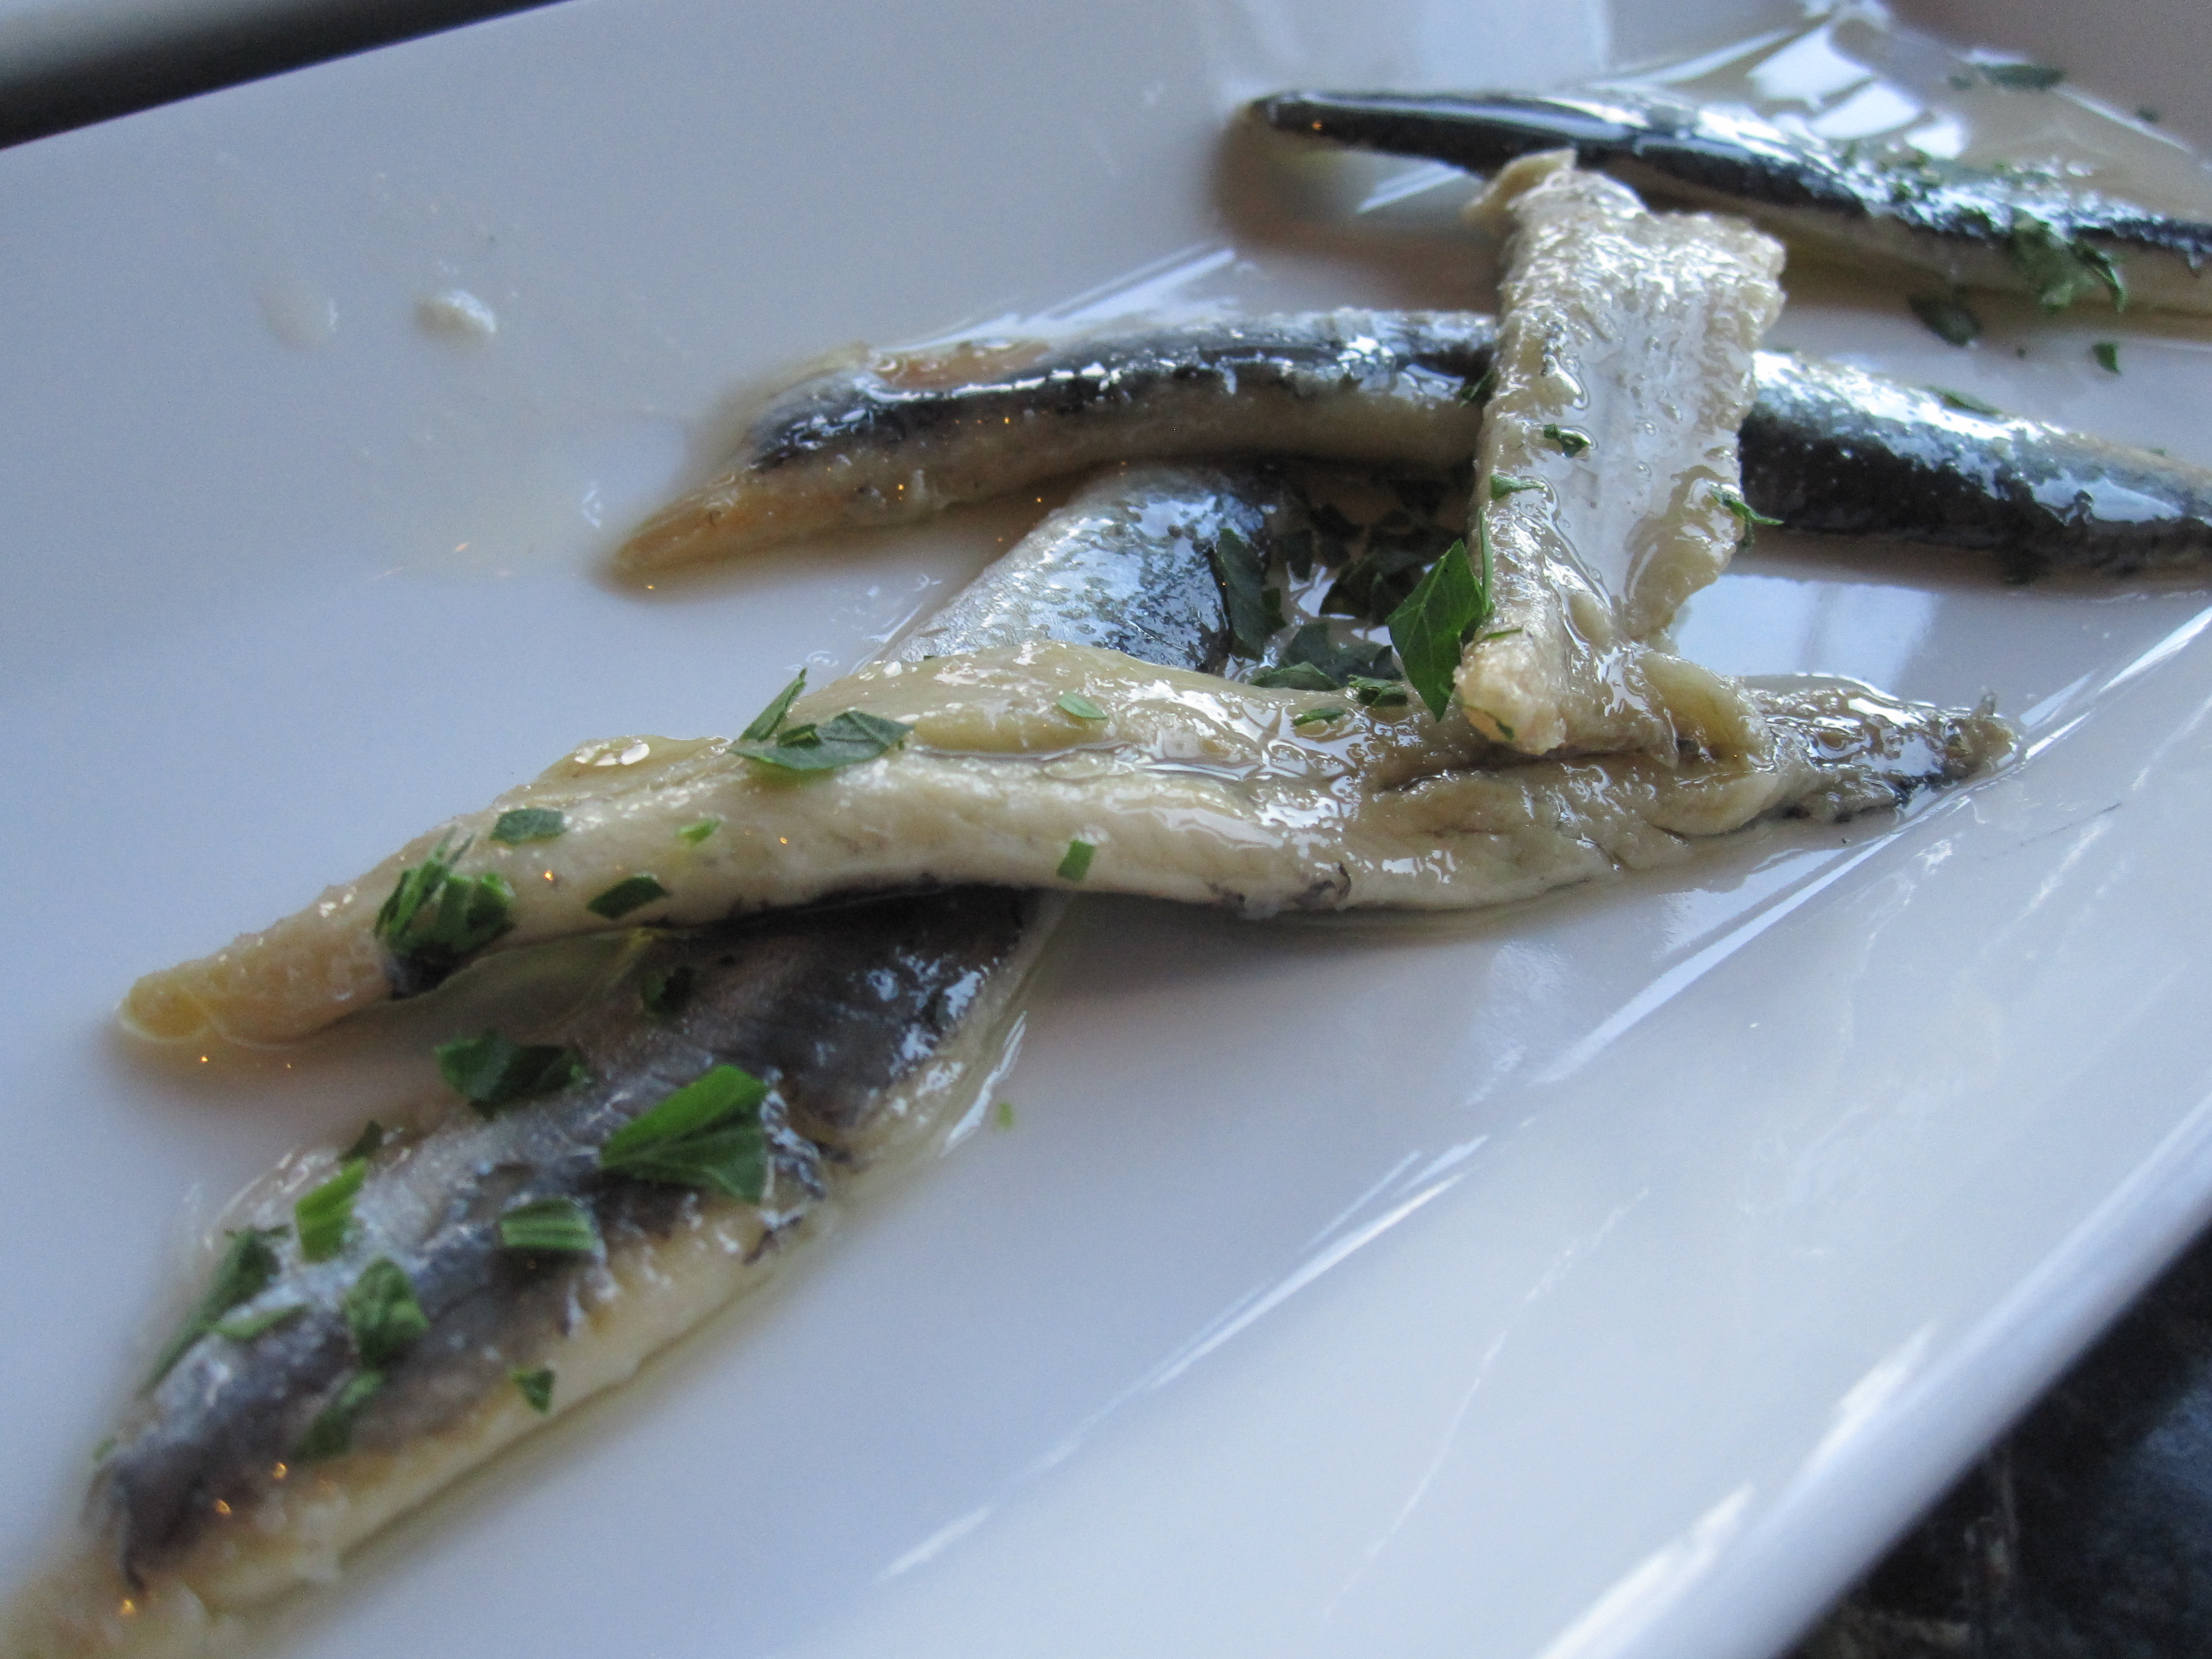 The Spanish boquerones were amazing. Stay tuned for the recipe!